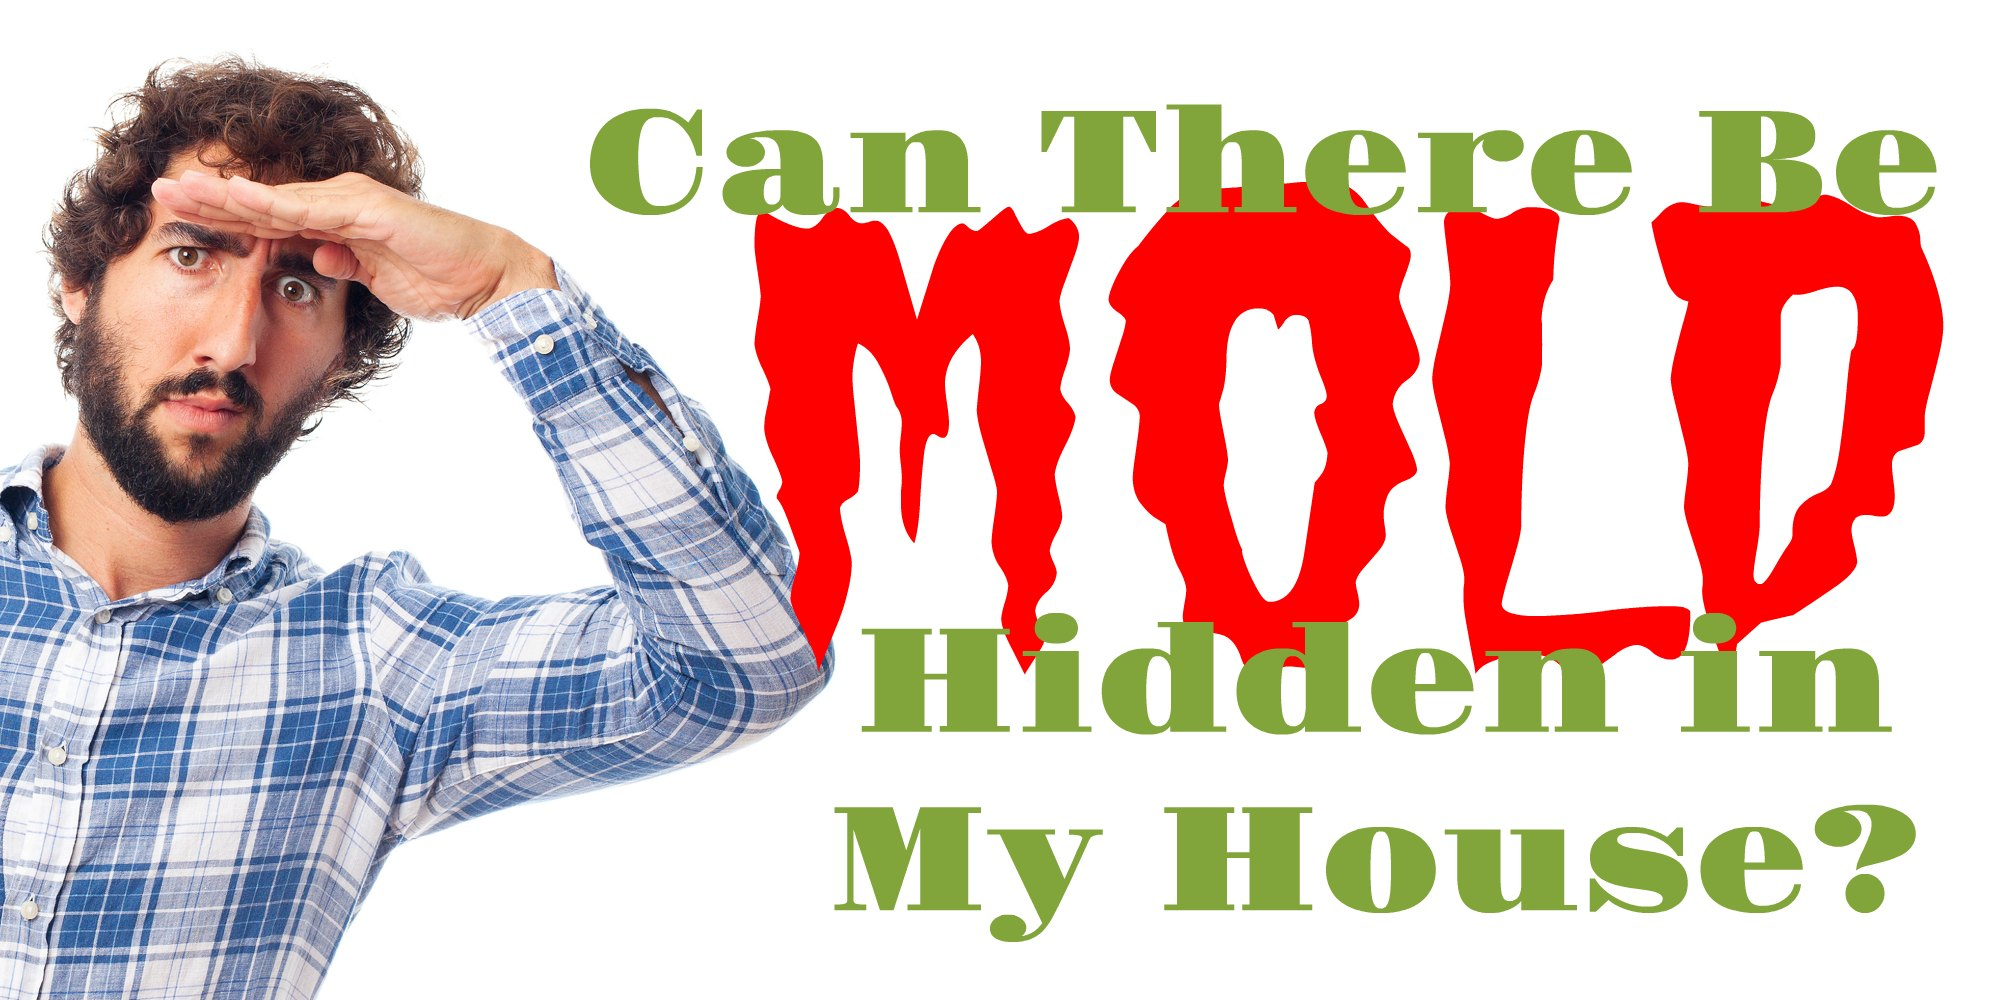 Have you ever wondered - Can there be hidden mold in my house? Find out where to look and what real mold looks like from a Pro.